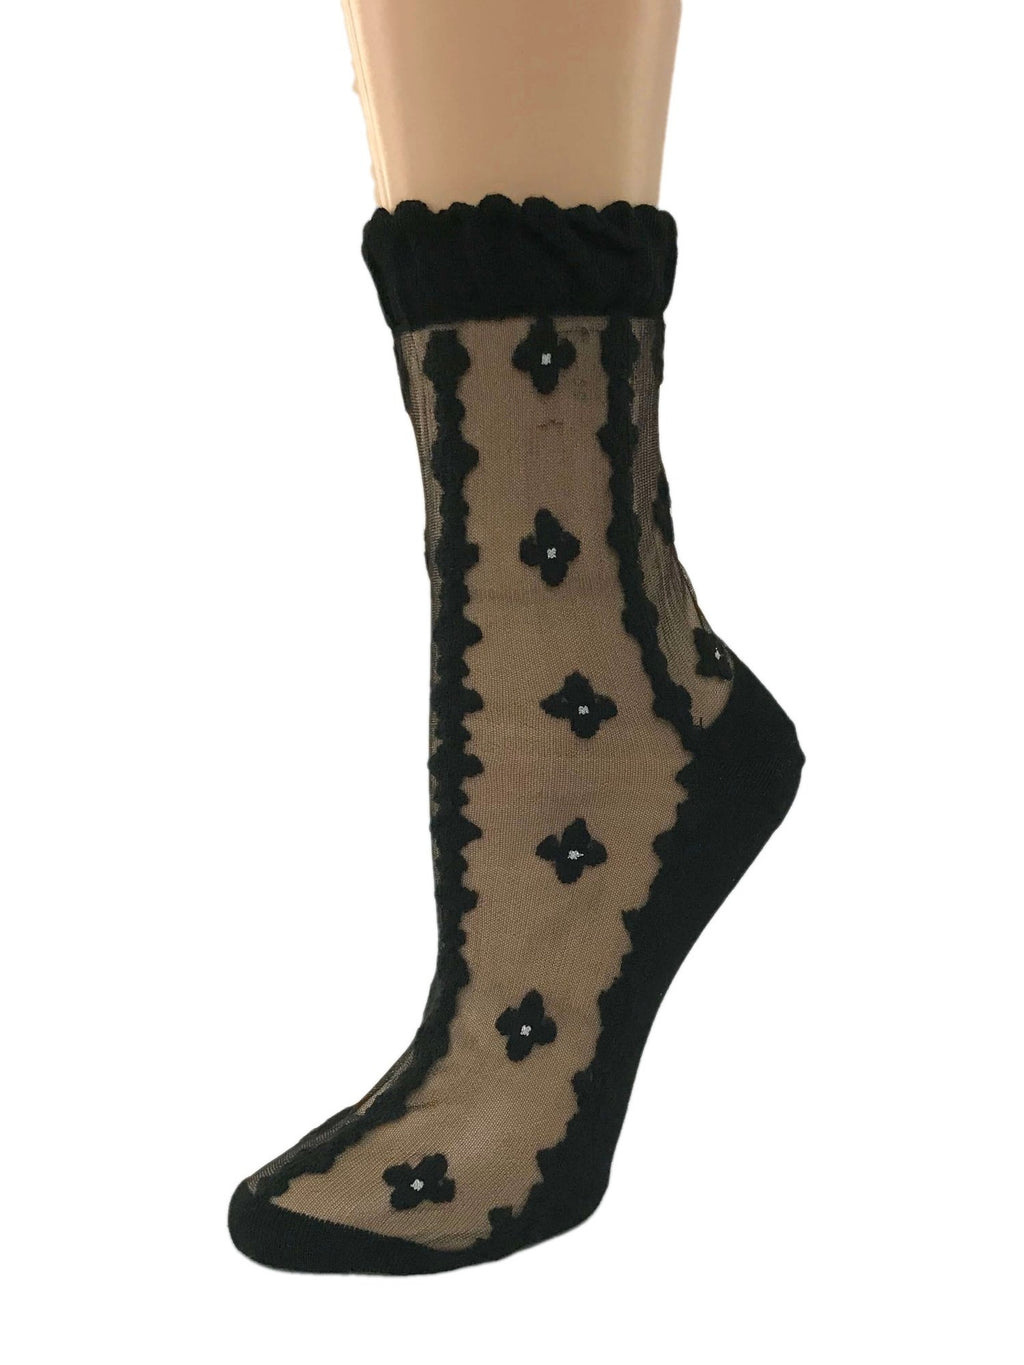 Four Leaf Black Sheer Socks - Global Trendz Fashion®